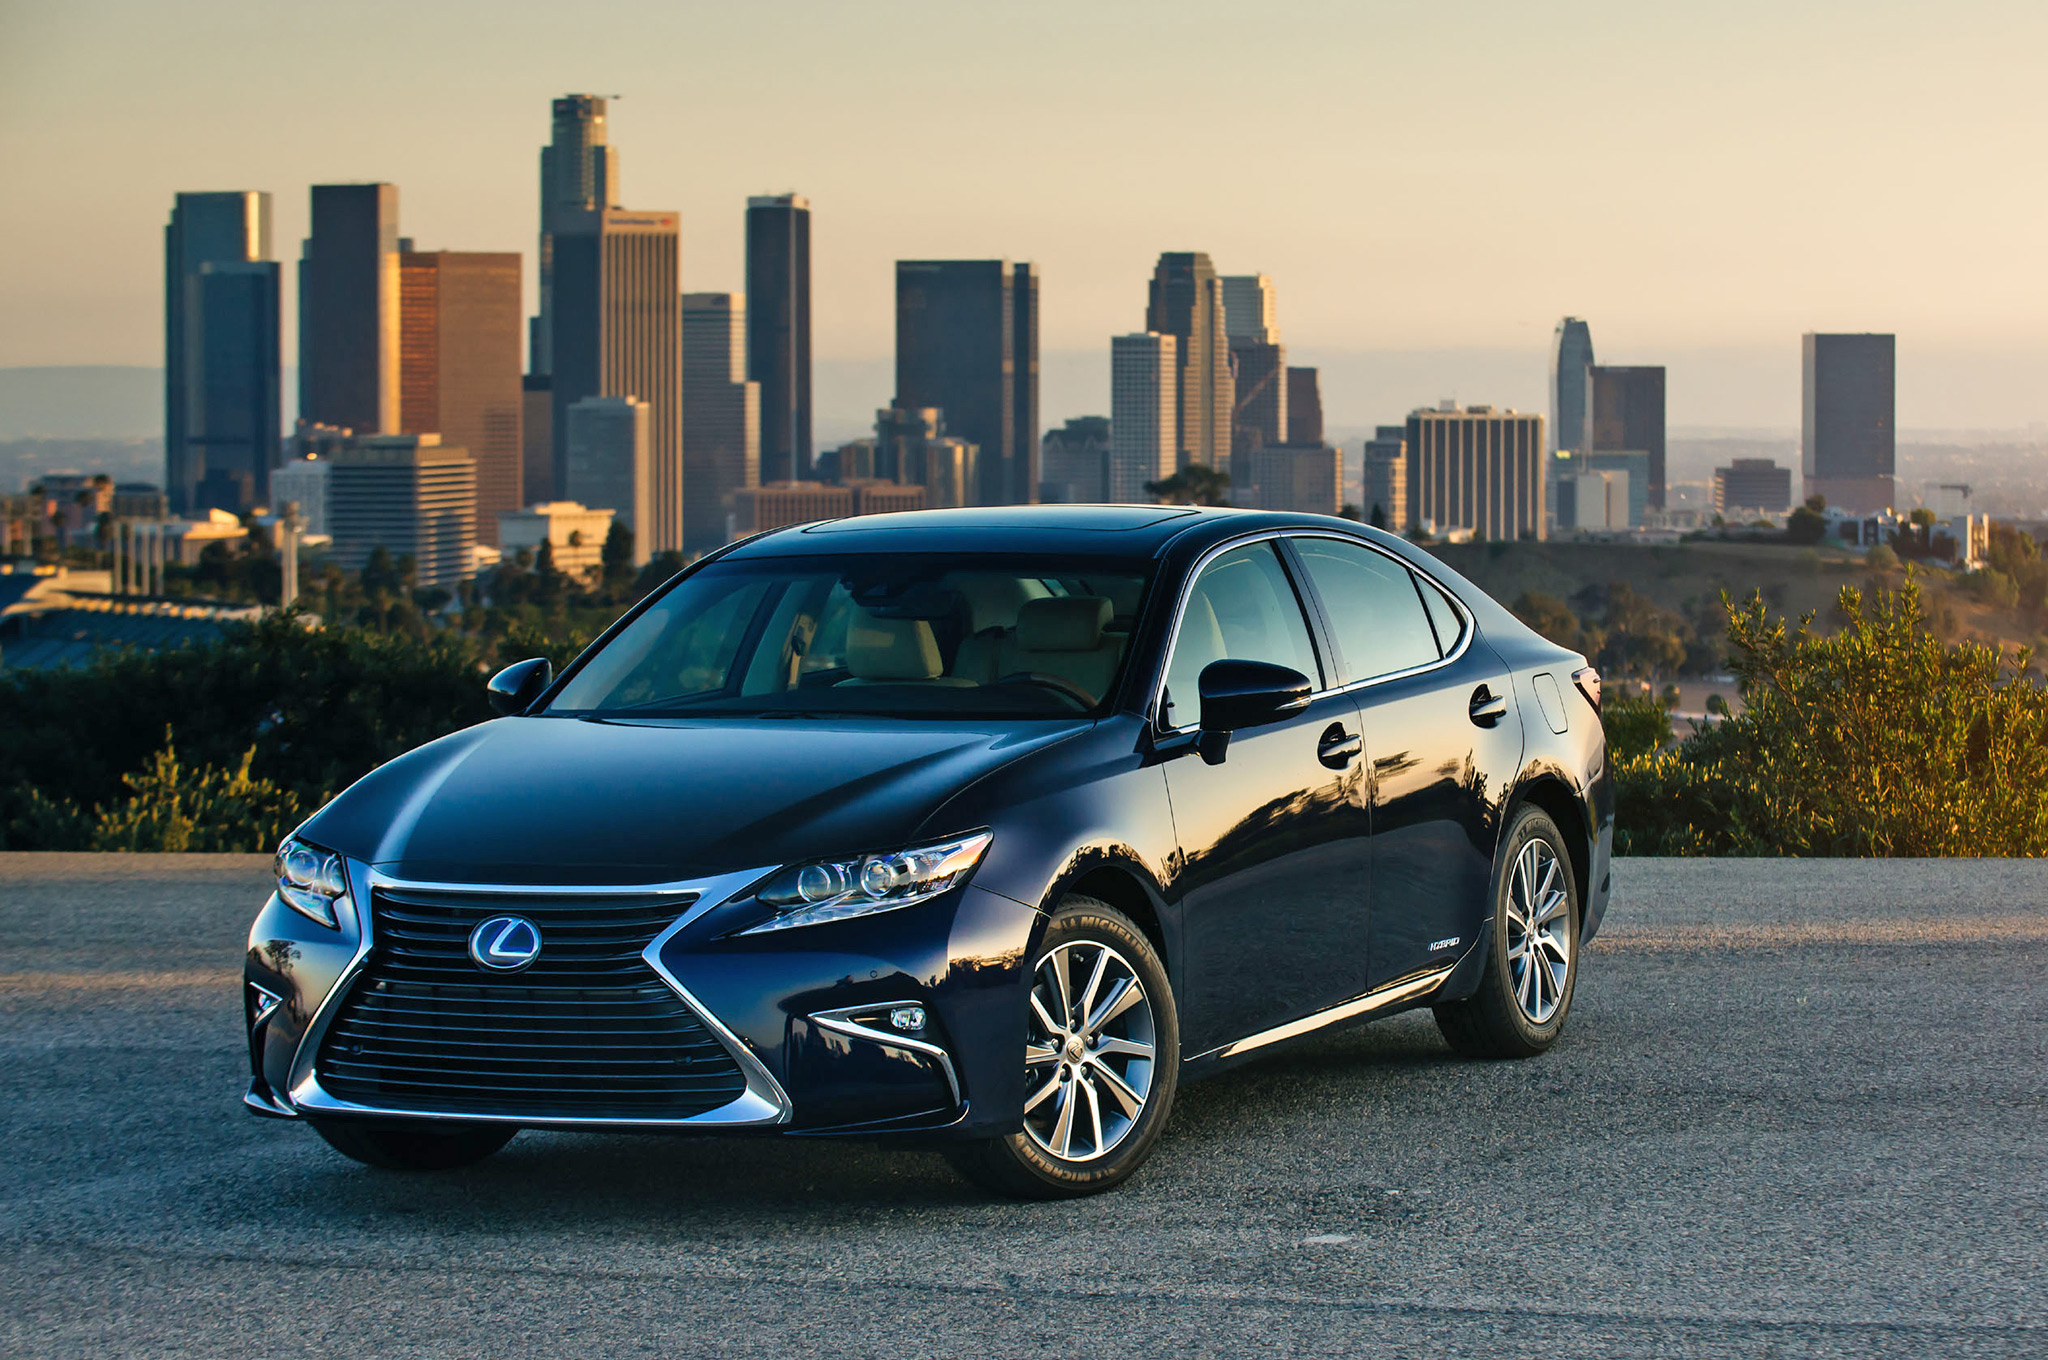 img lakeridge drive leasing in new vehicles sale for intermediate trim of es luxury lexus wheel toronto automatic front select